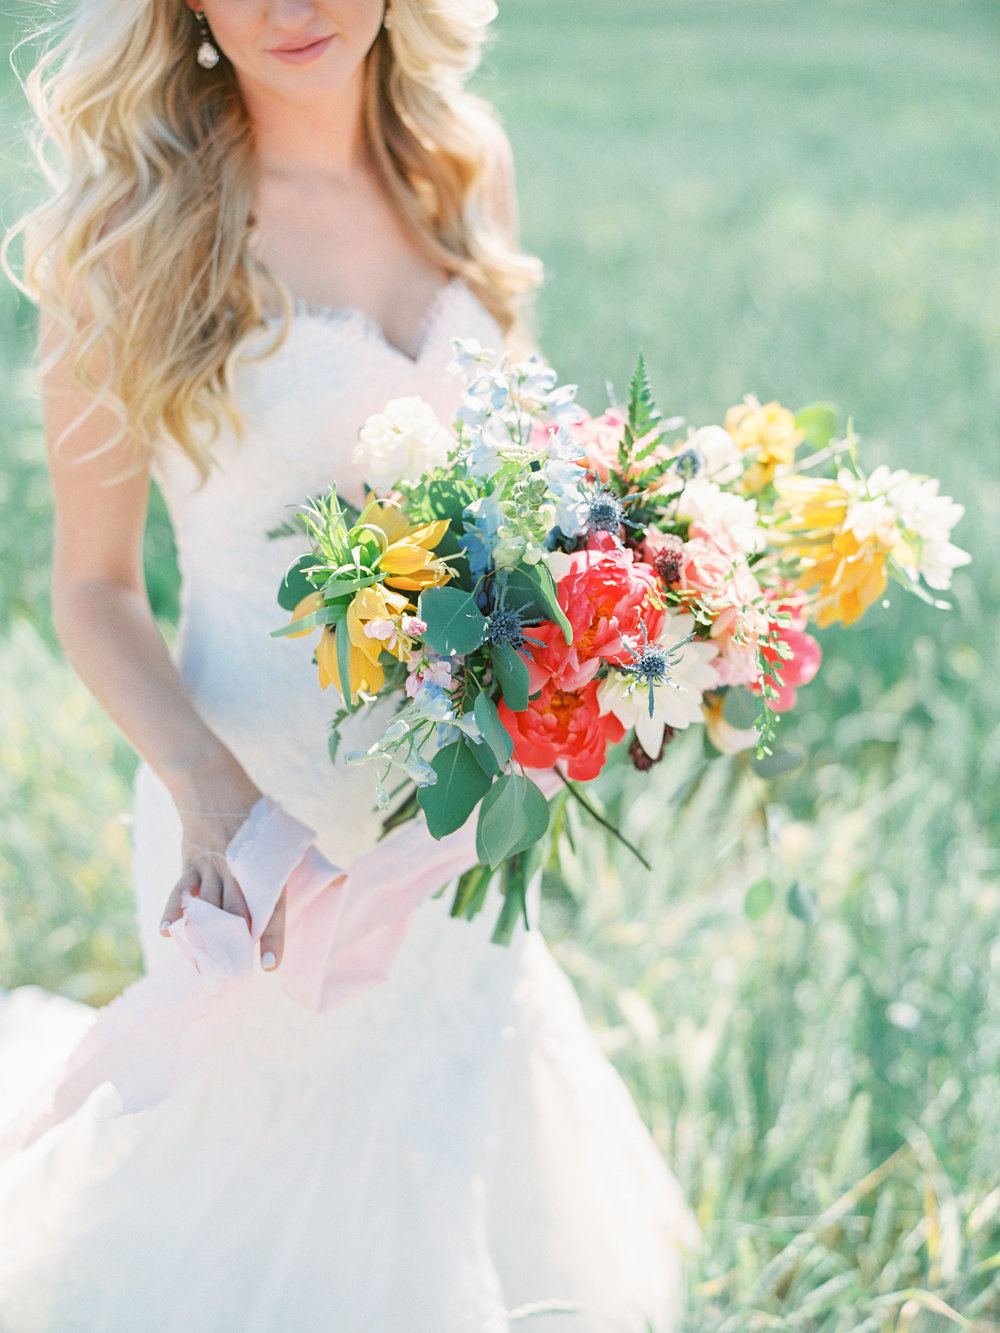 Dairy Farm Wedding - Spring Bridal Bouquet Inspiration